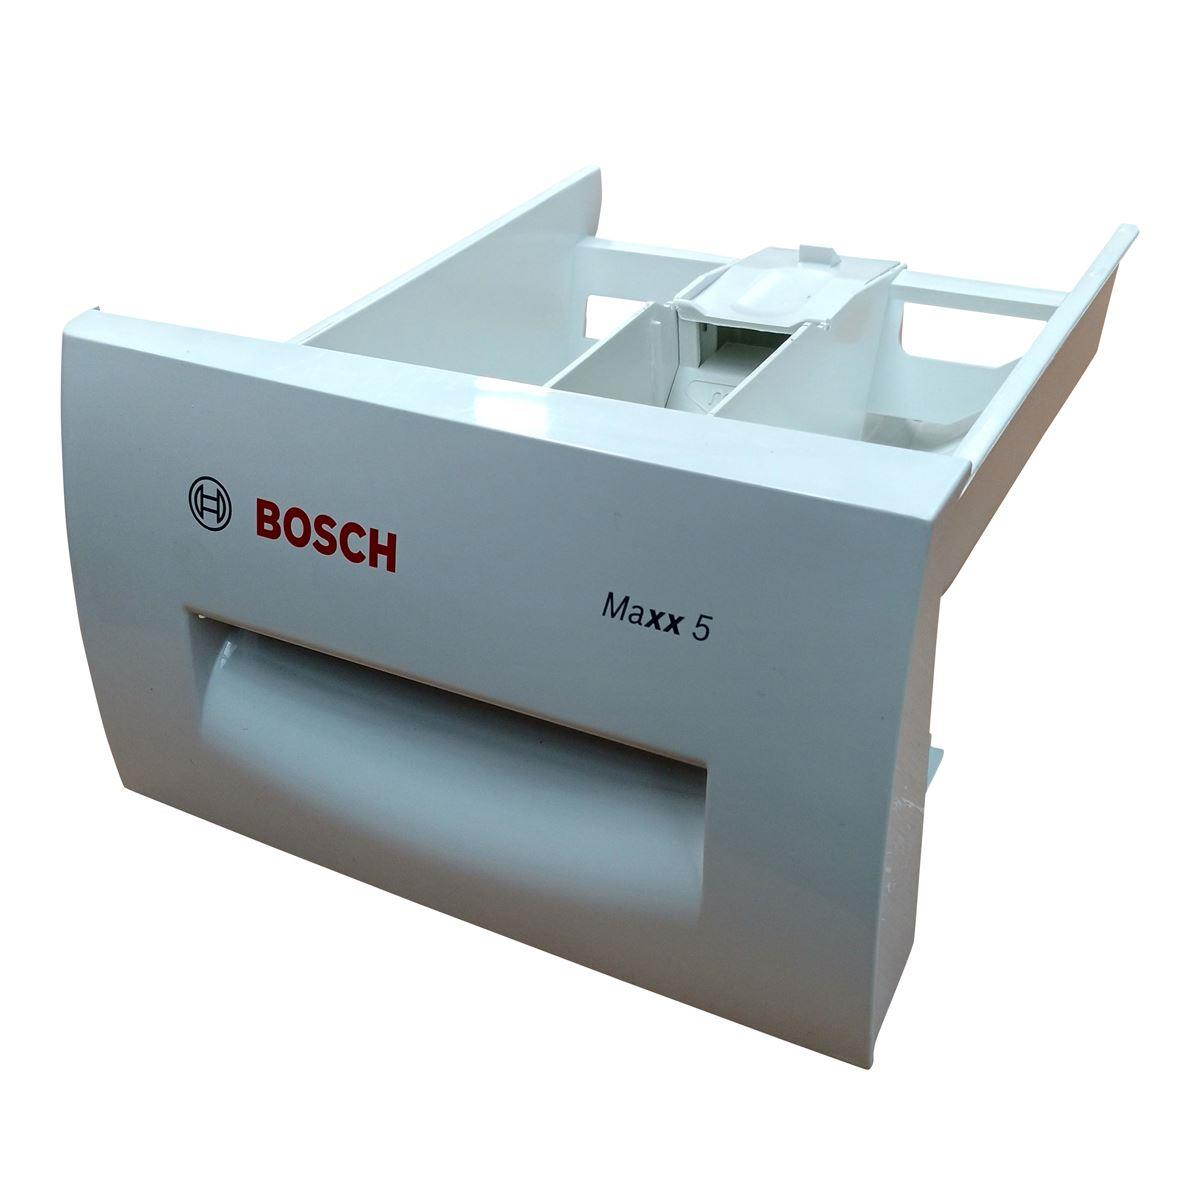 bosch detergent soap drawer for maxx 5 white online store. Black Bedroom Furniture Sets. Home Design Ideas